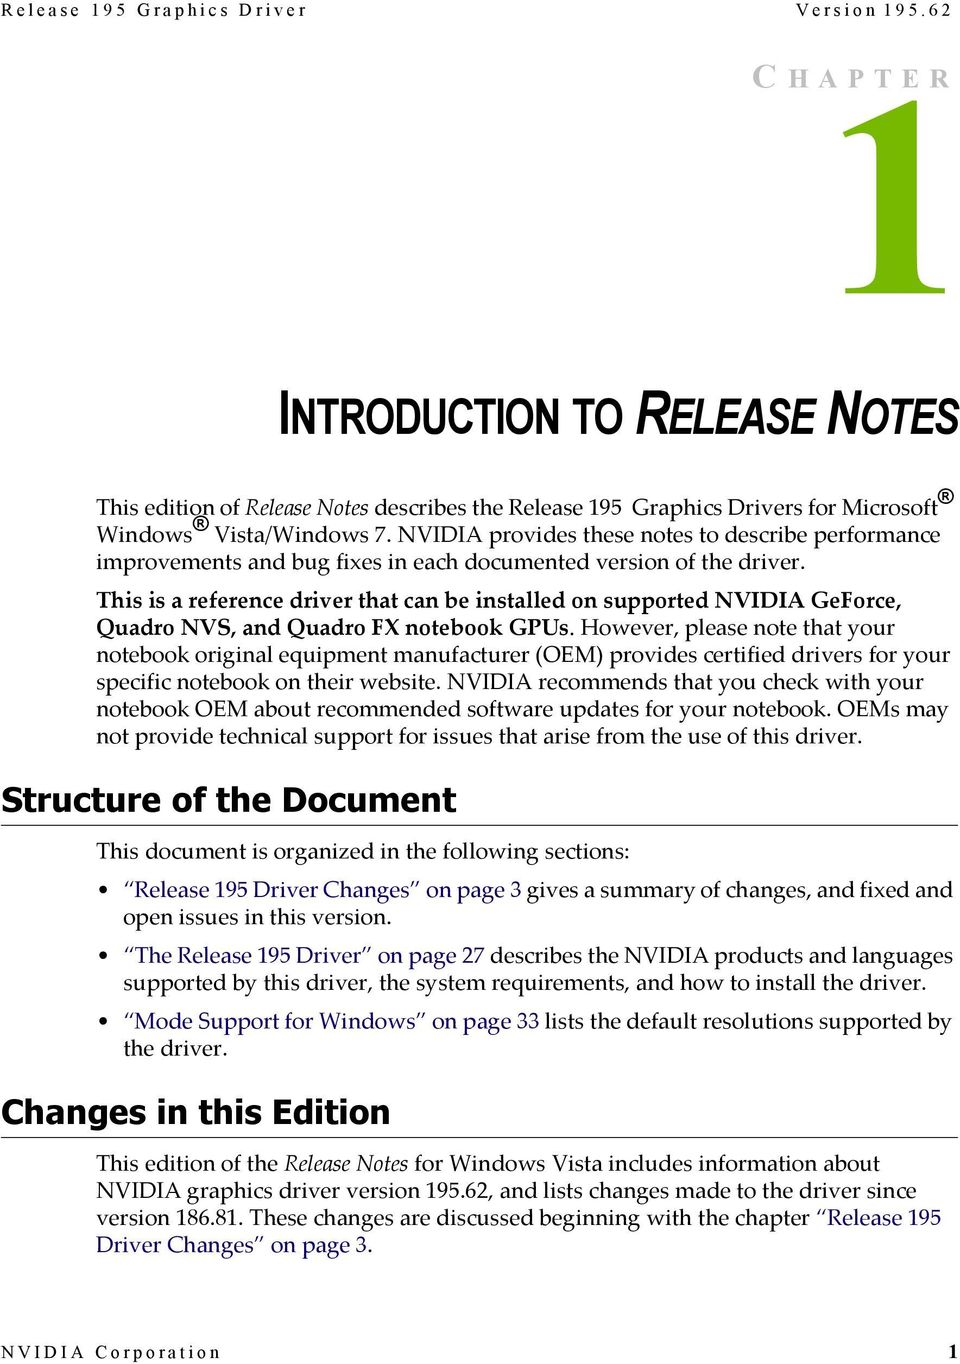 Release 195 Graphics Drivers for Notebooks Release Notes - PDF